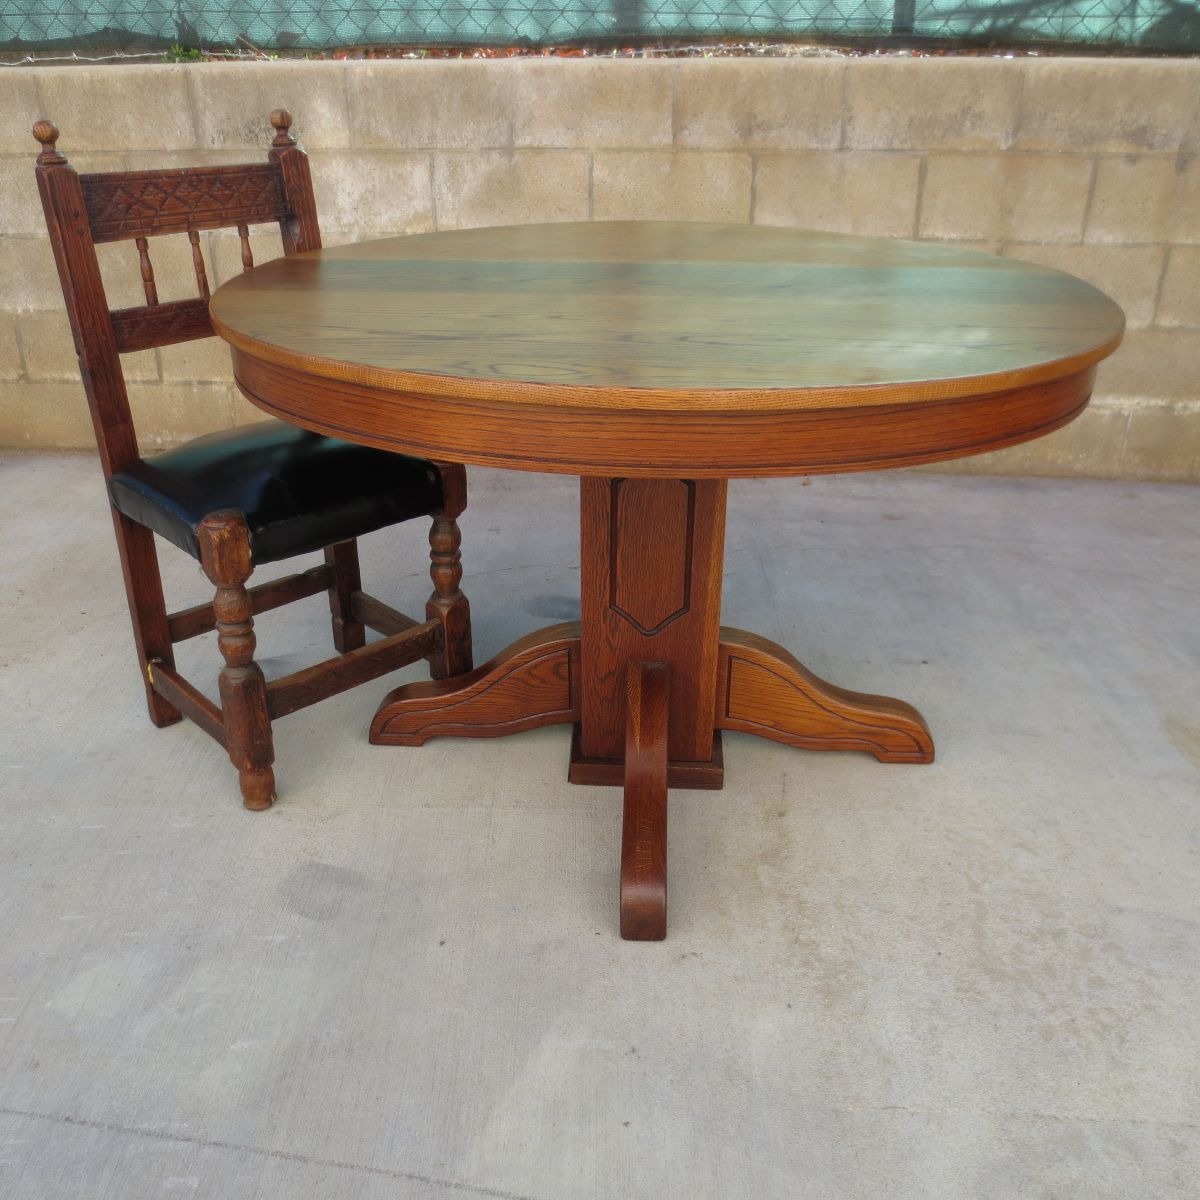 Cool Antique Round Dining Table Trend 64 In Small Home Remodel